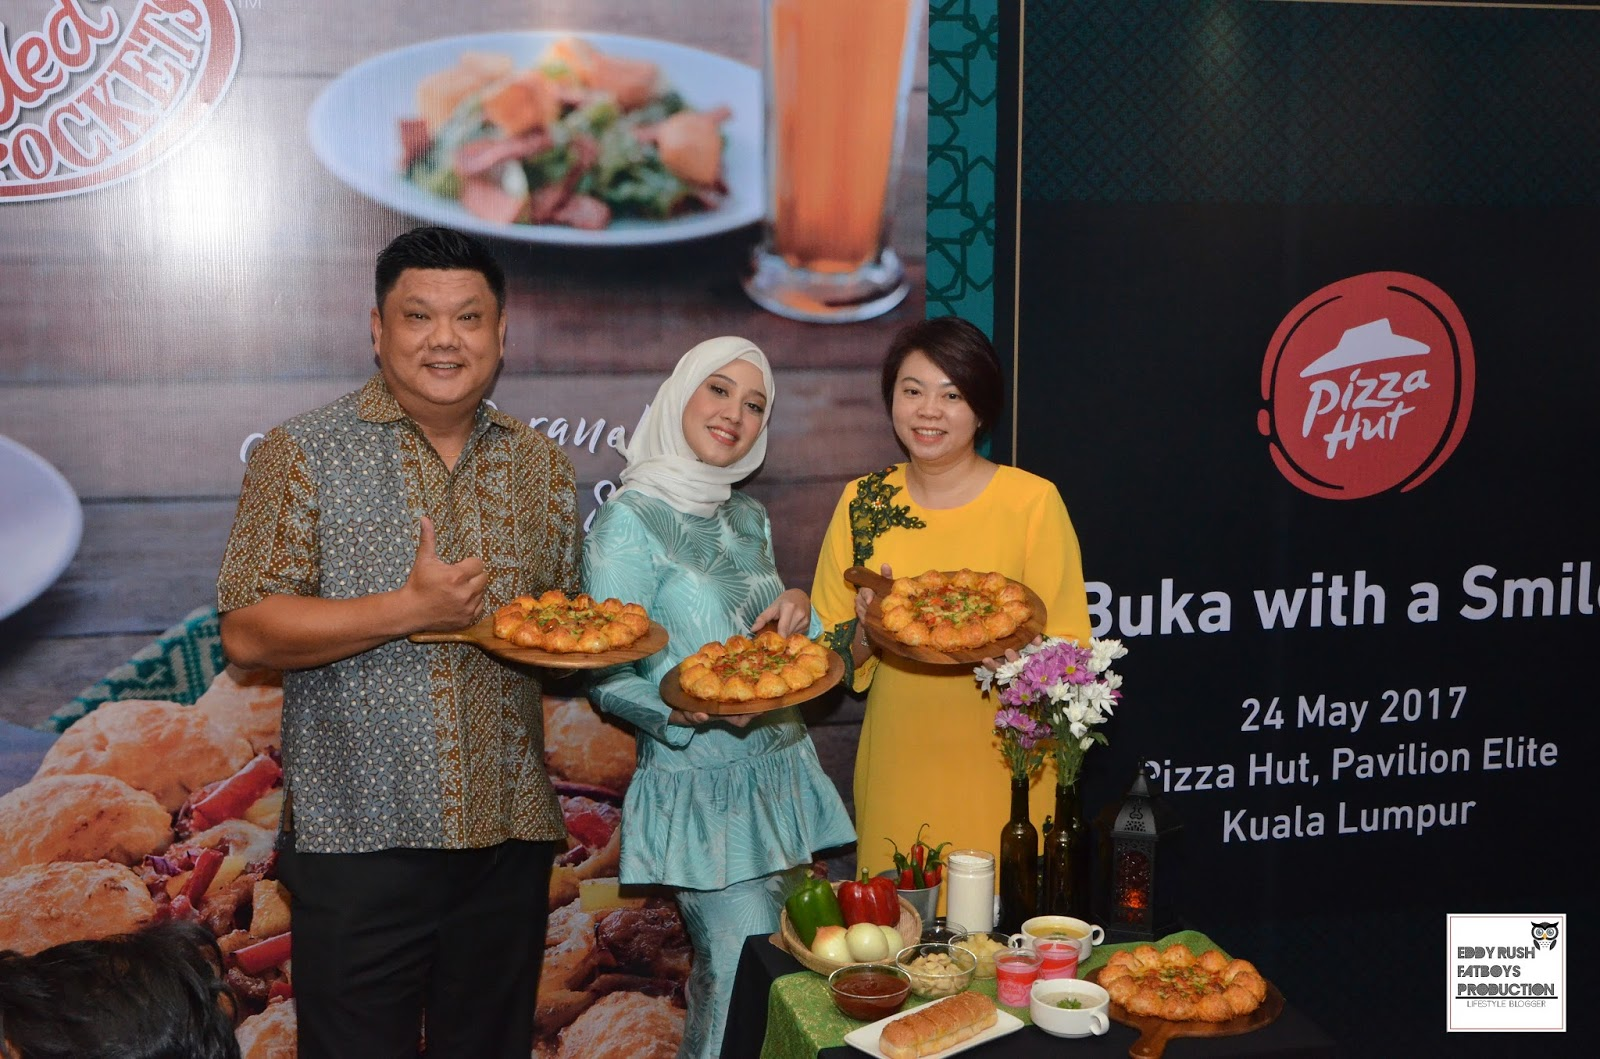 pizza hut malaysia history The history of pizza hut two brothers from kansas founded pizza hut in 1958 the $600 start-up money was borrowed from their mother,.